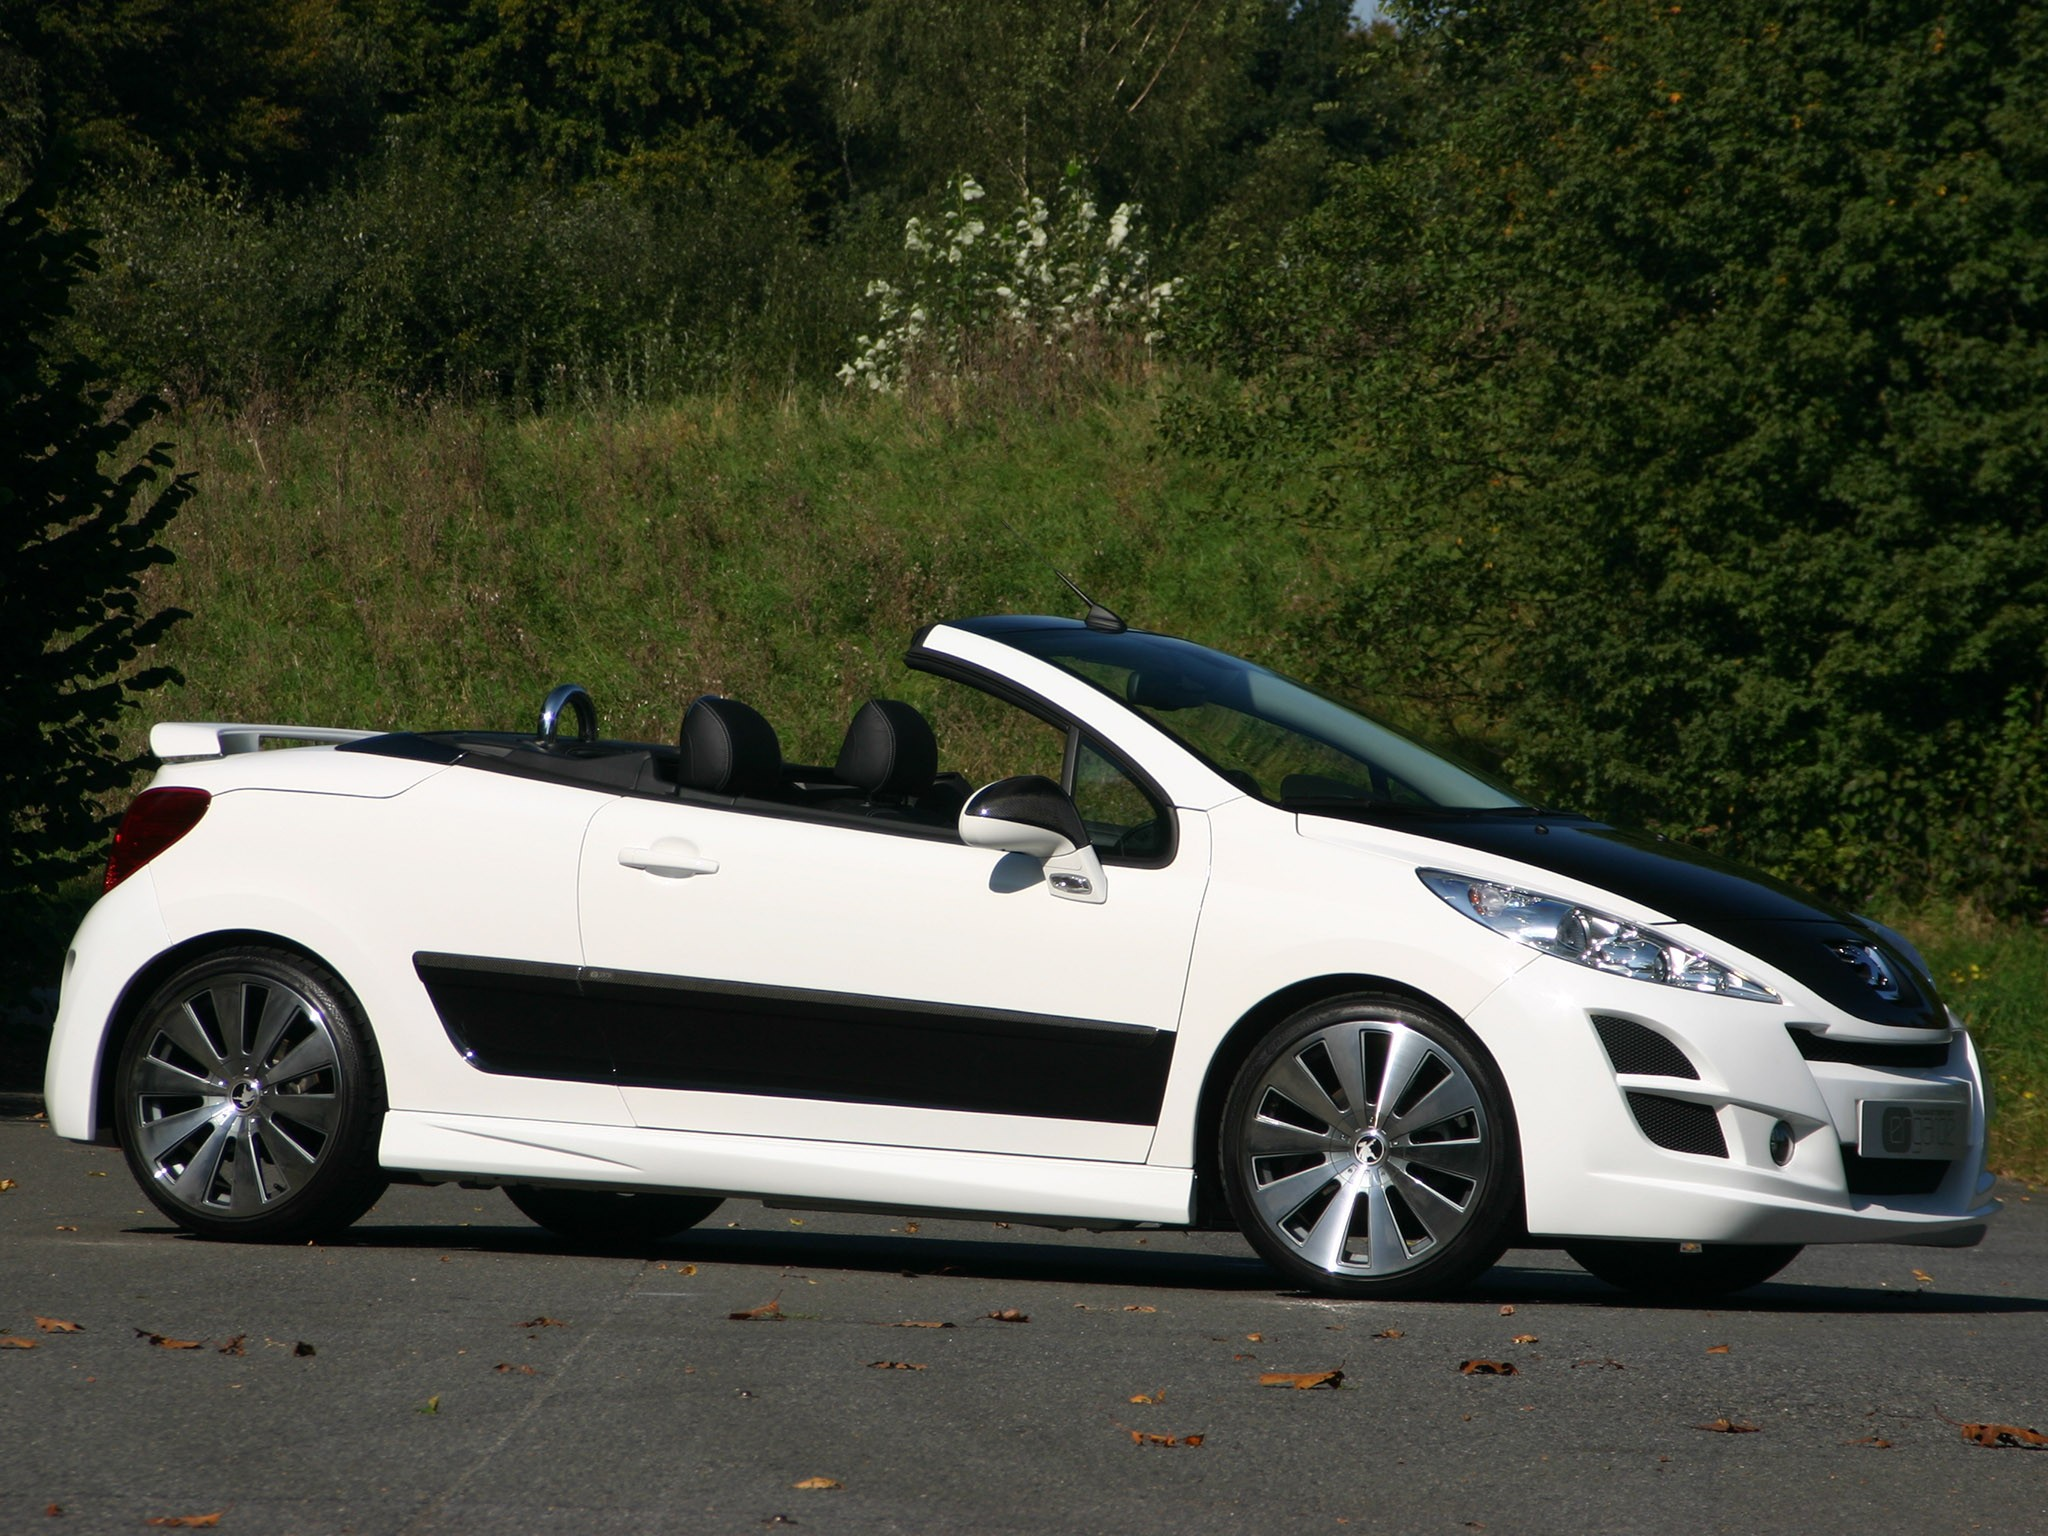 2007 Musketier Peugeot 207 CC Engarde